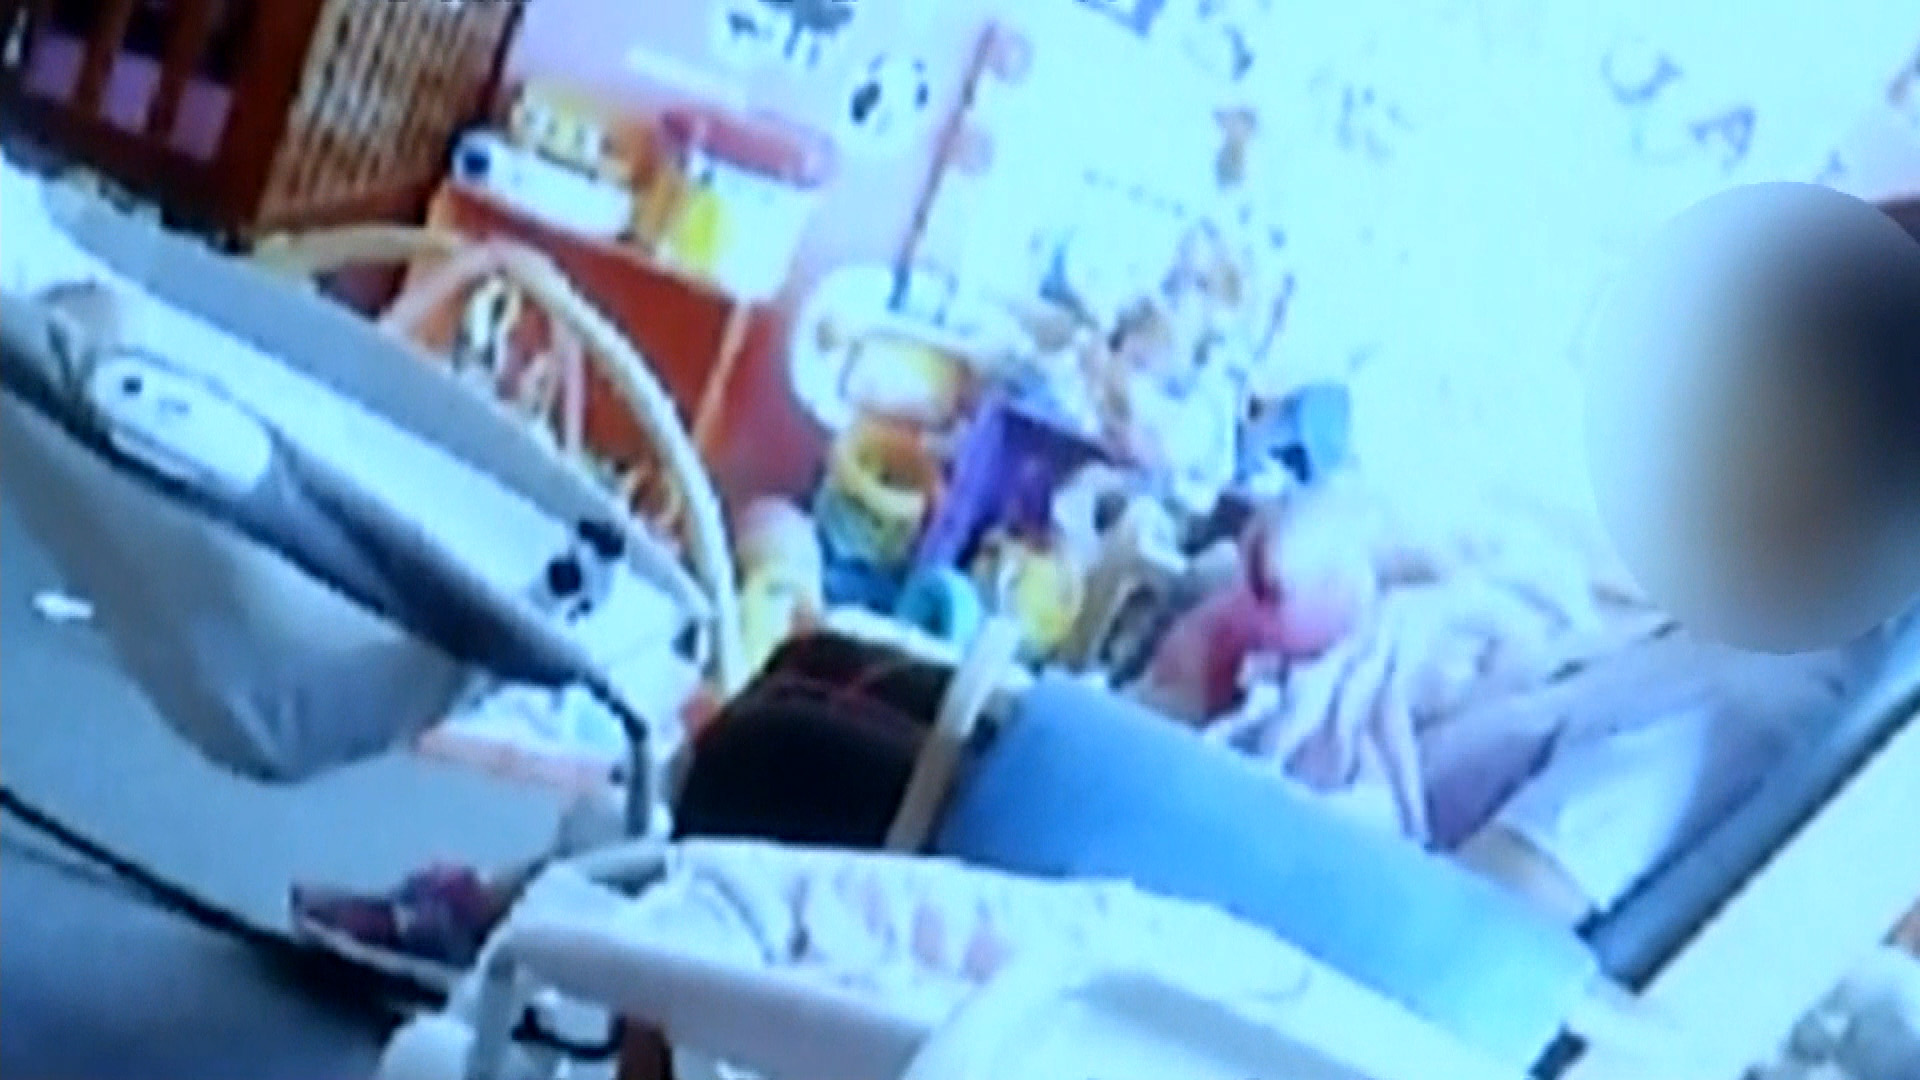 Shocking Video Shows Daycare Worker Roughly Rocking Baby